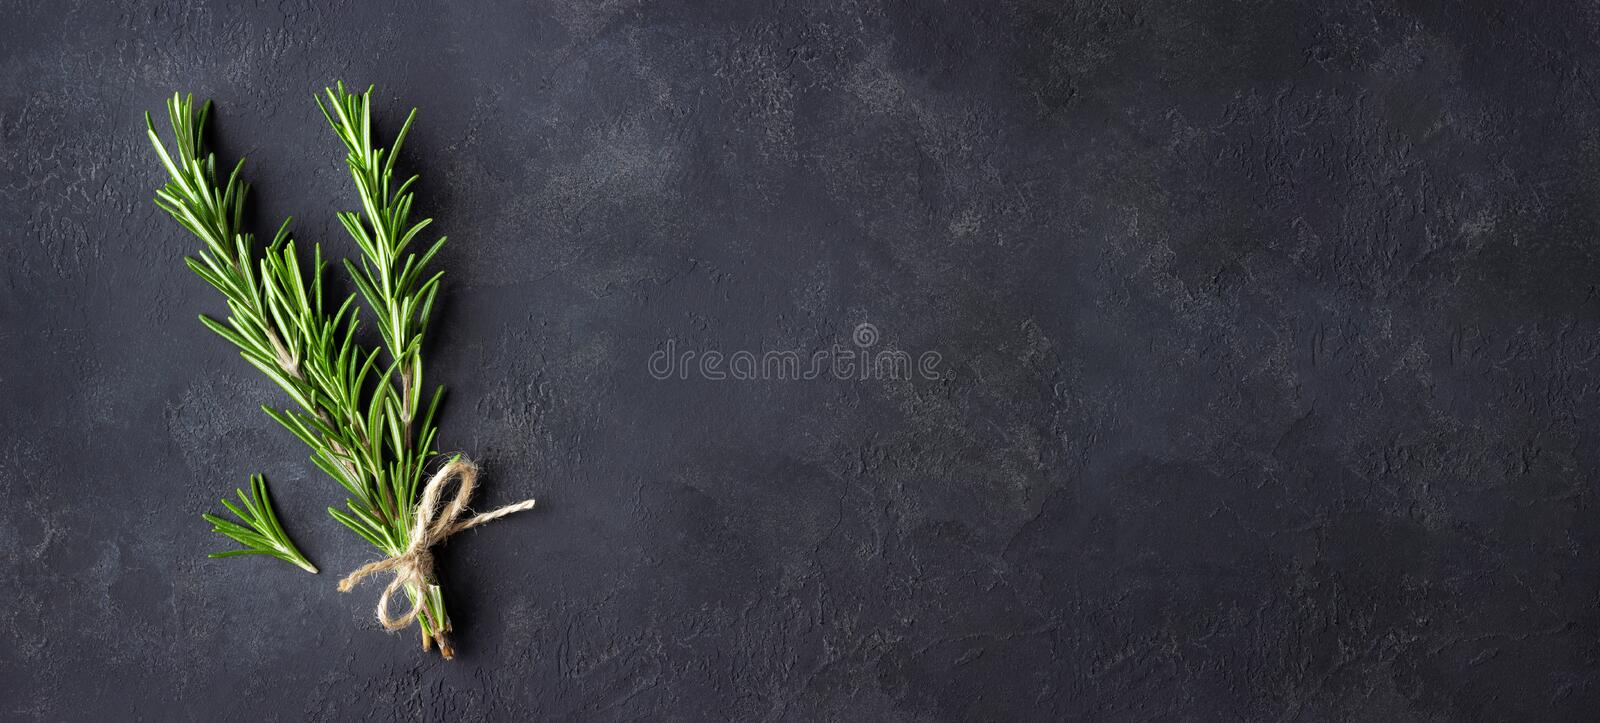 Rosemary herbs on dark stone background. Copy space for menu or recipe. Flat Lay stock image